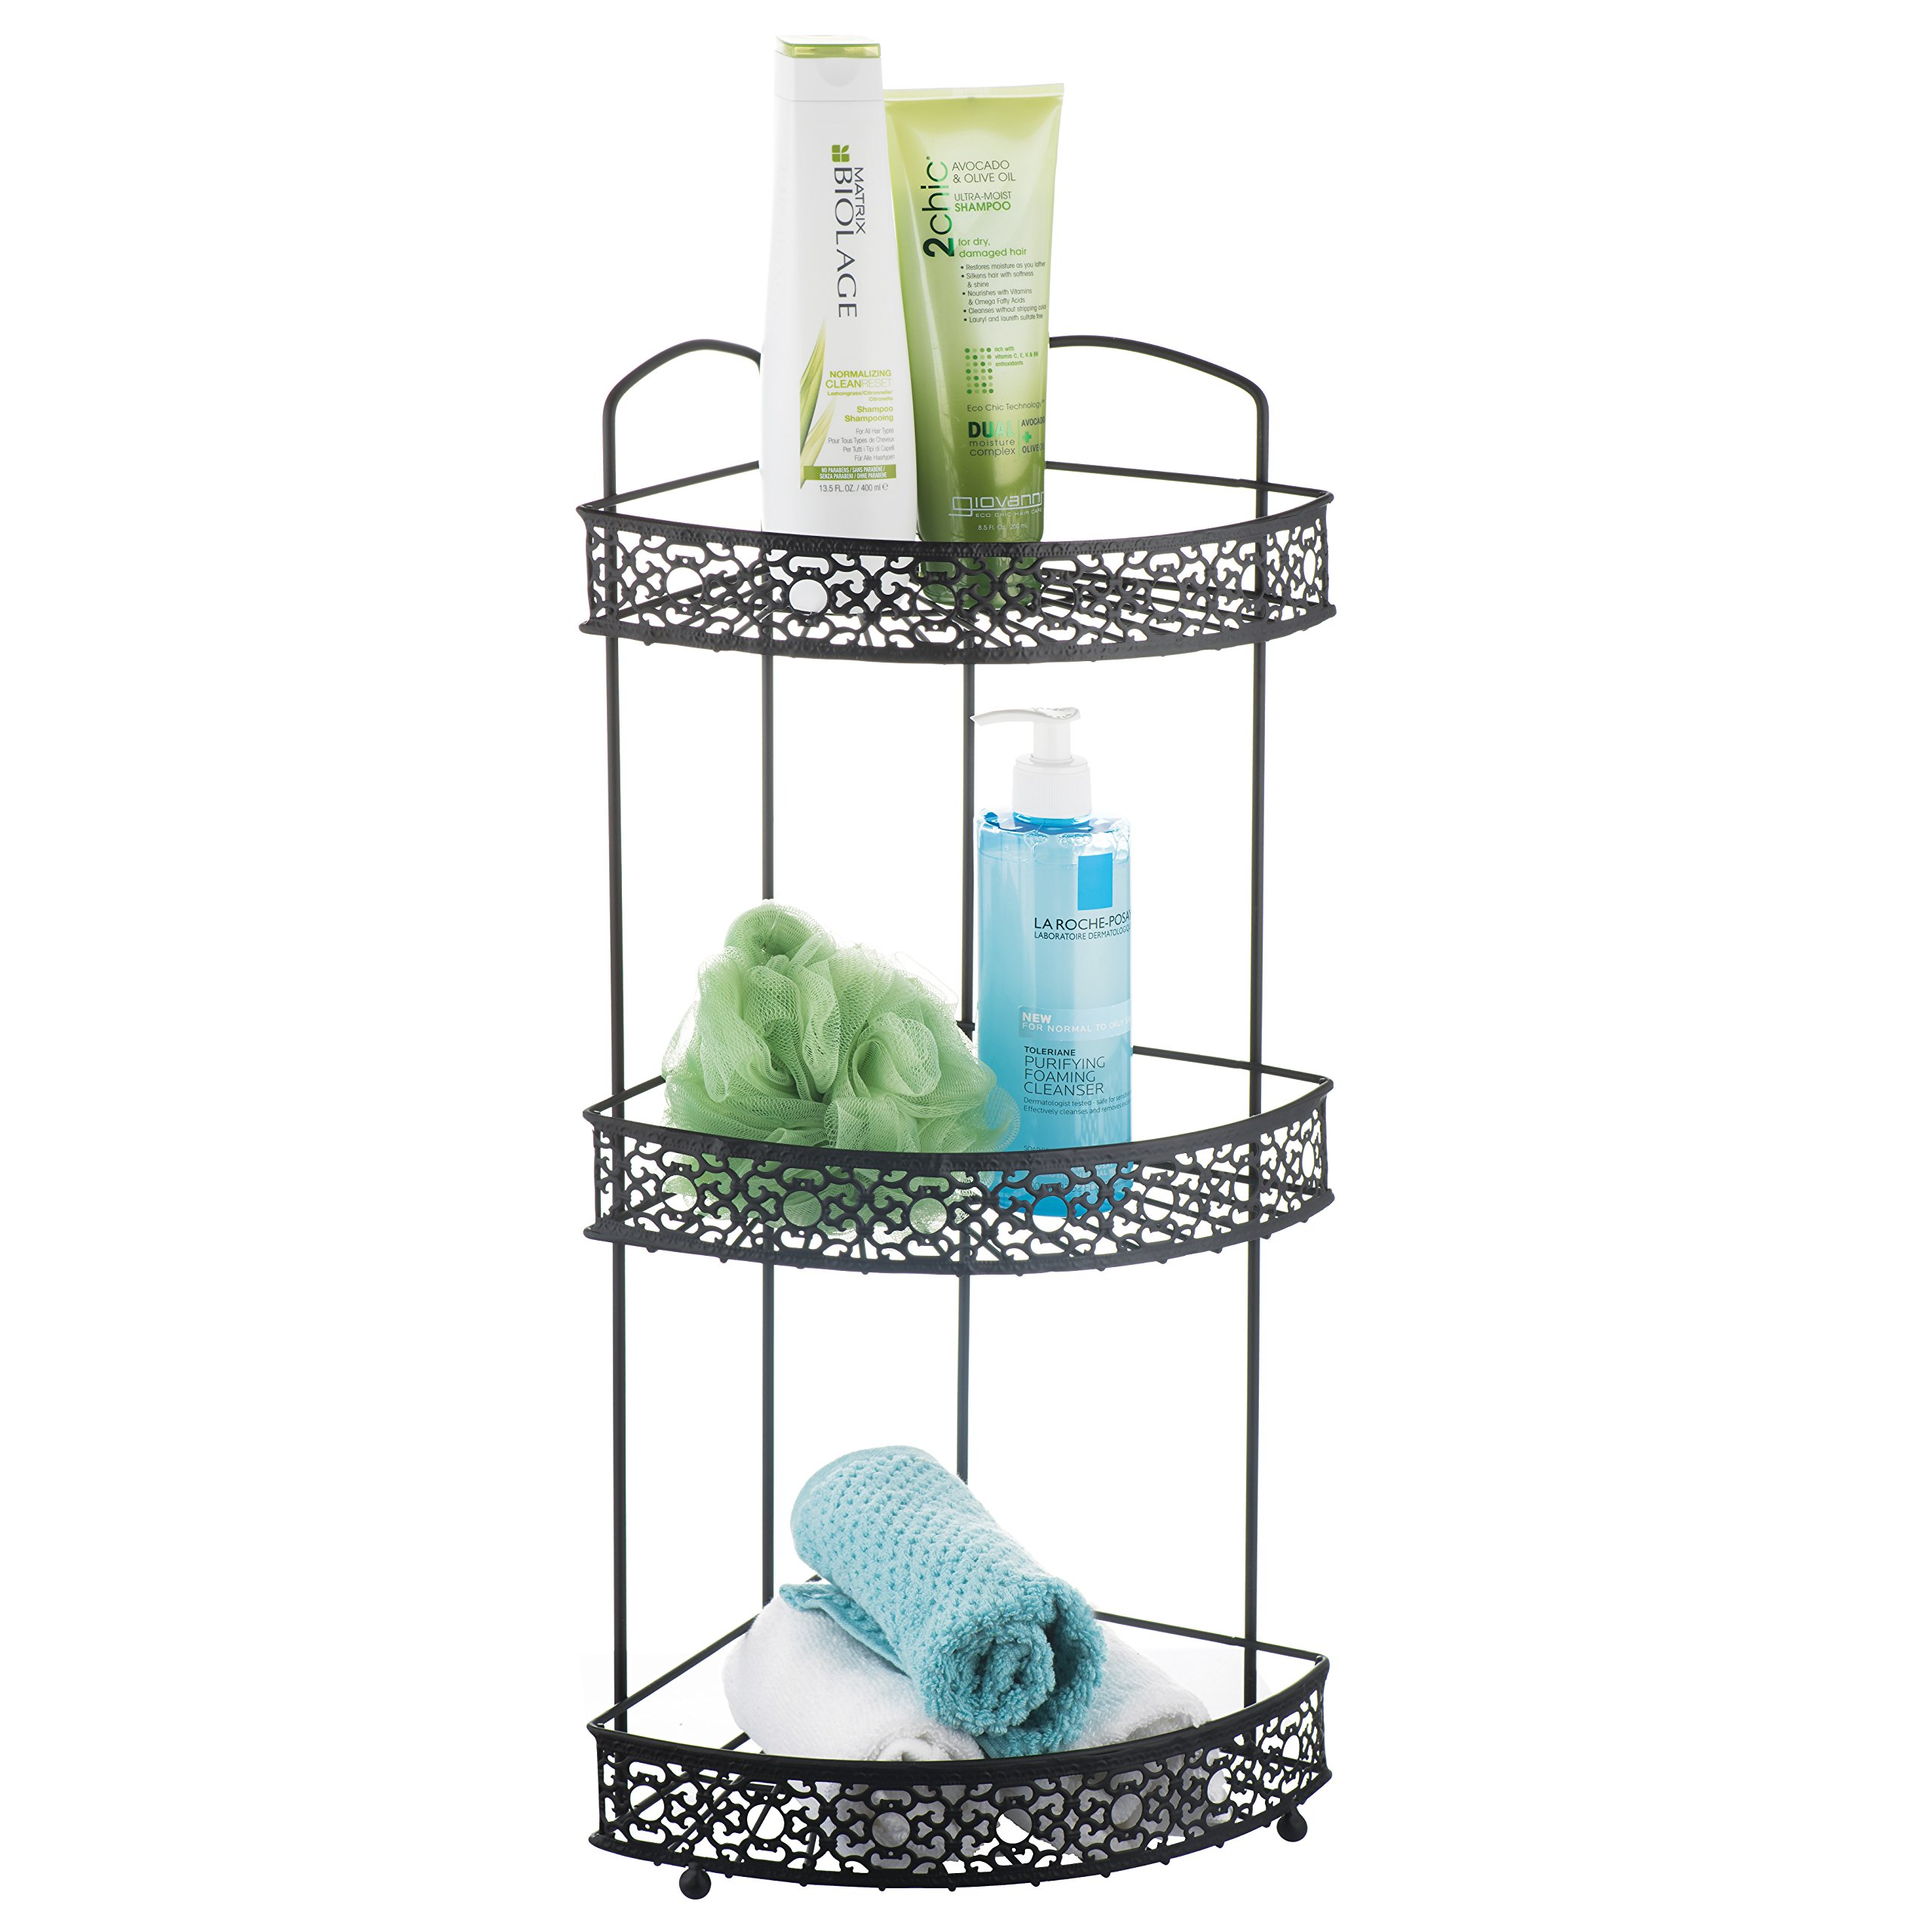 AMG and Enchante Accessories Free Standing Bathroom Spa Tower Floor Caddy, FC230-A MBK, Matte Black